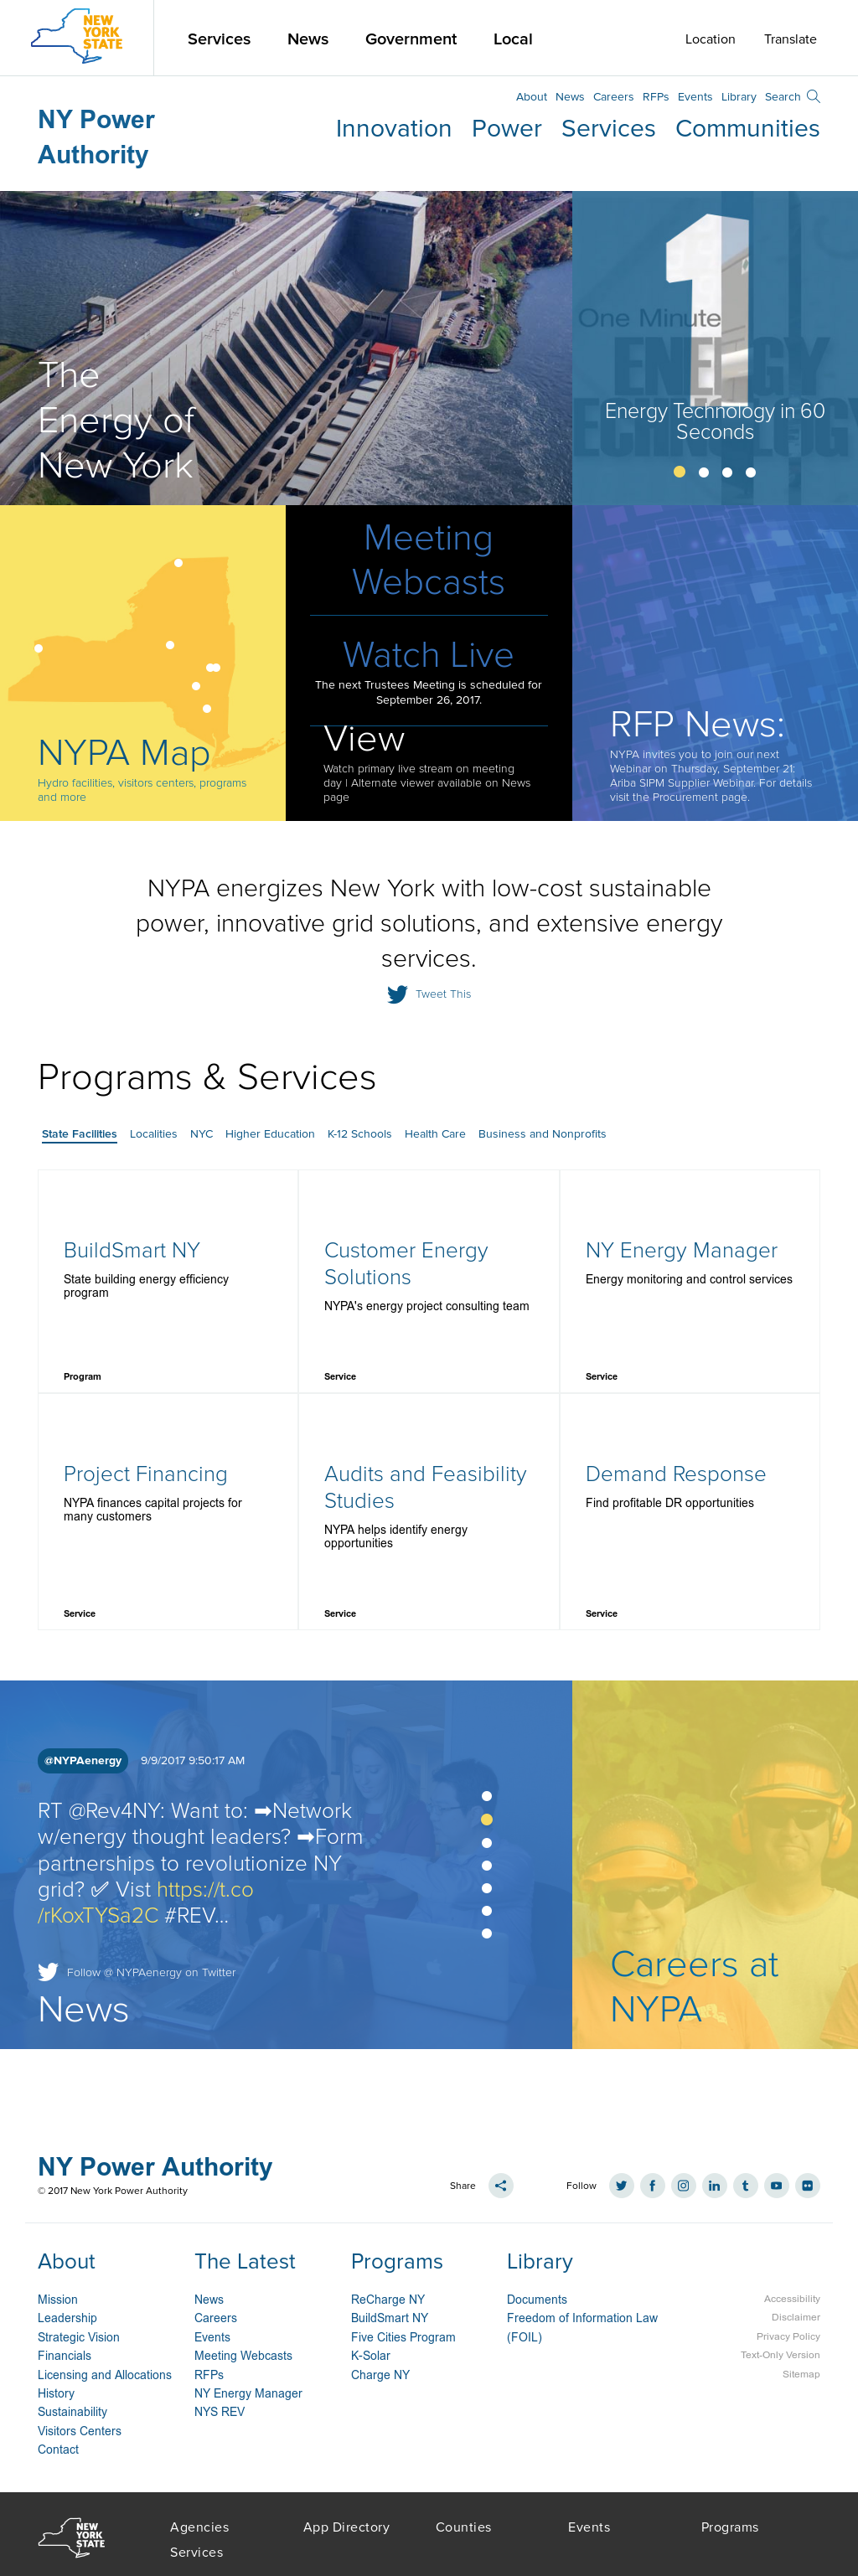 NYPA Competitors, Revenue and Employees - Owler Company Profile